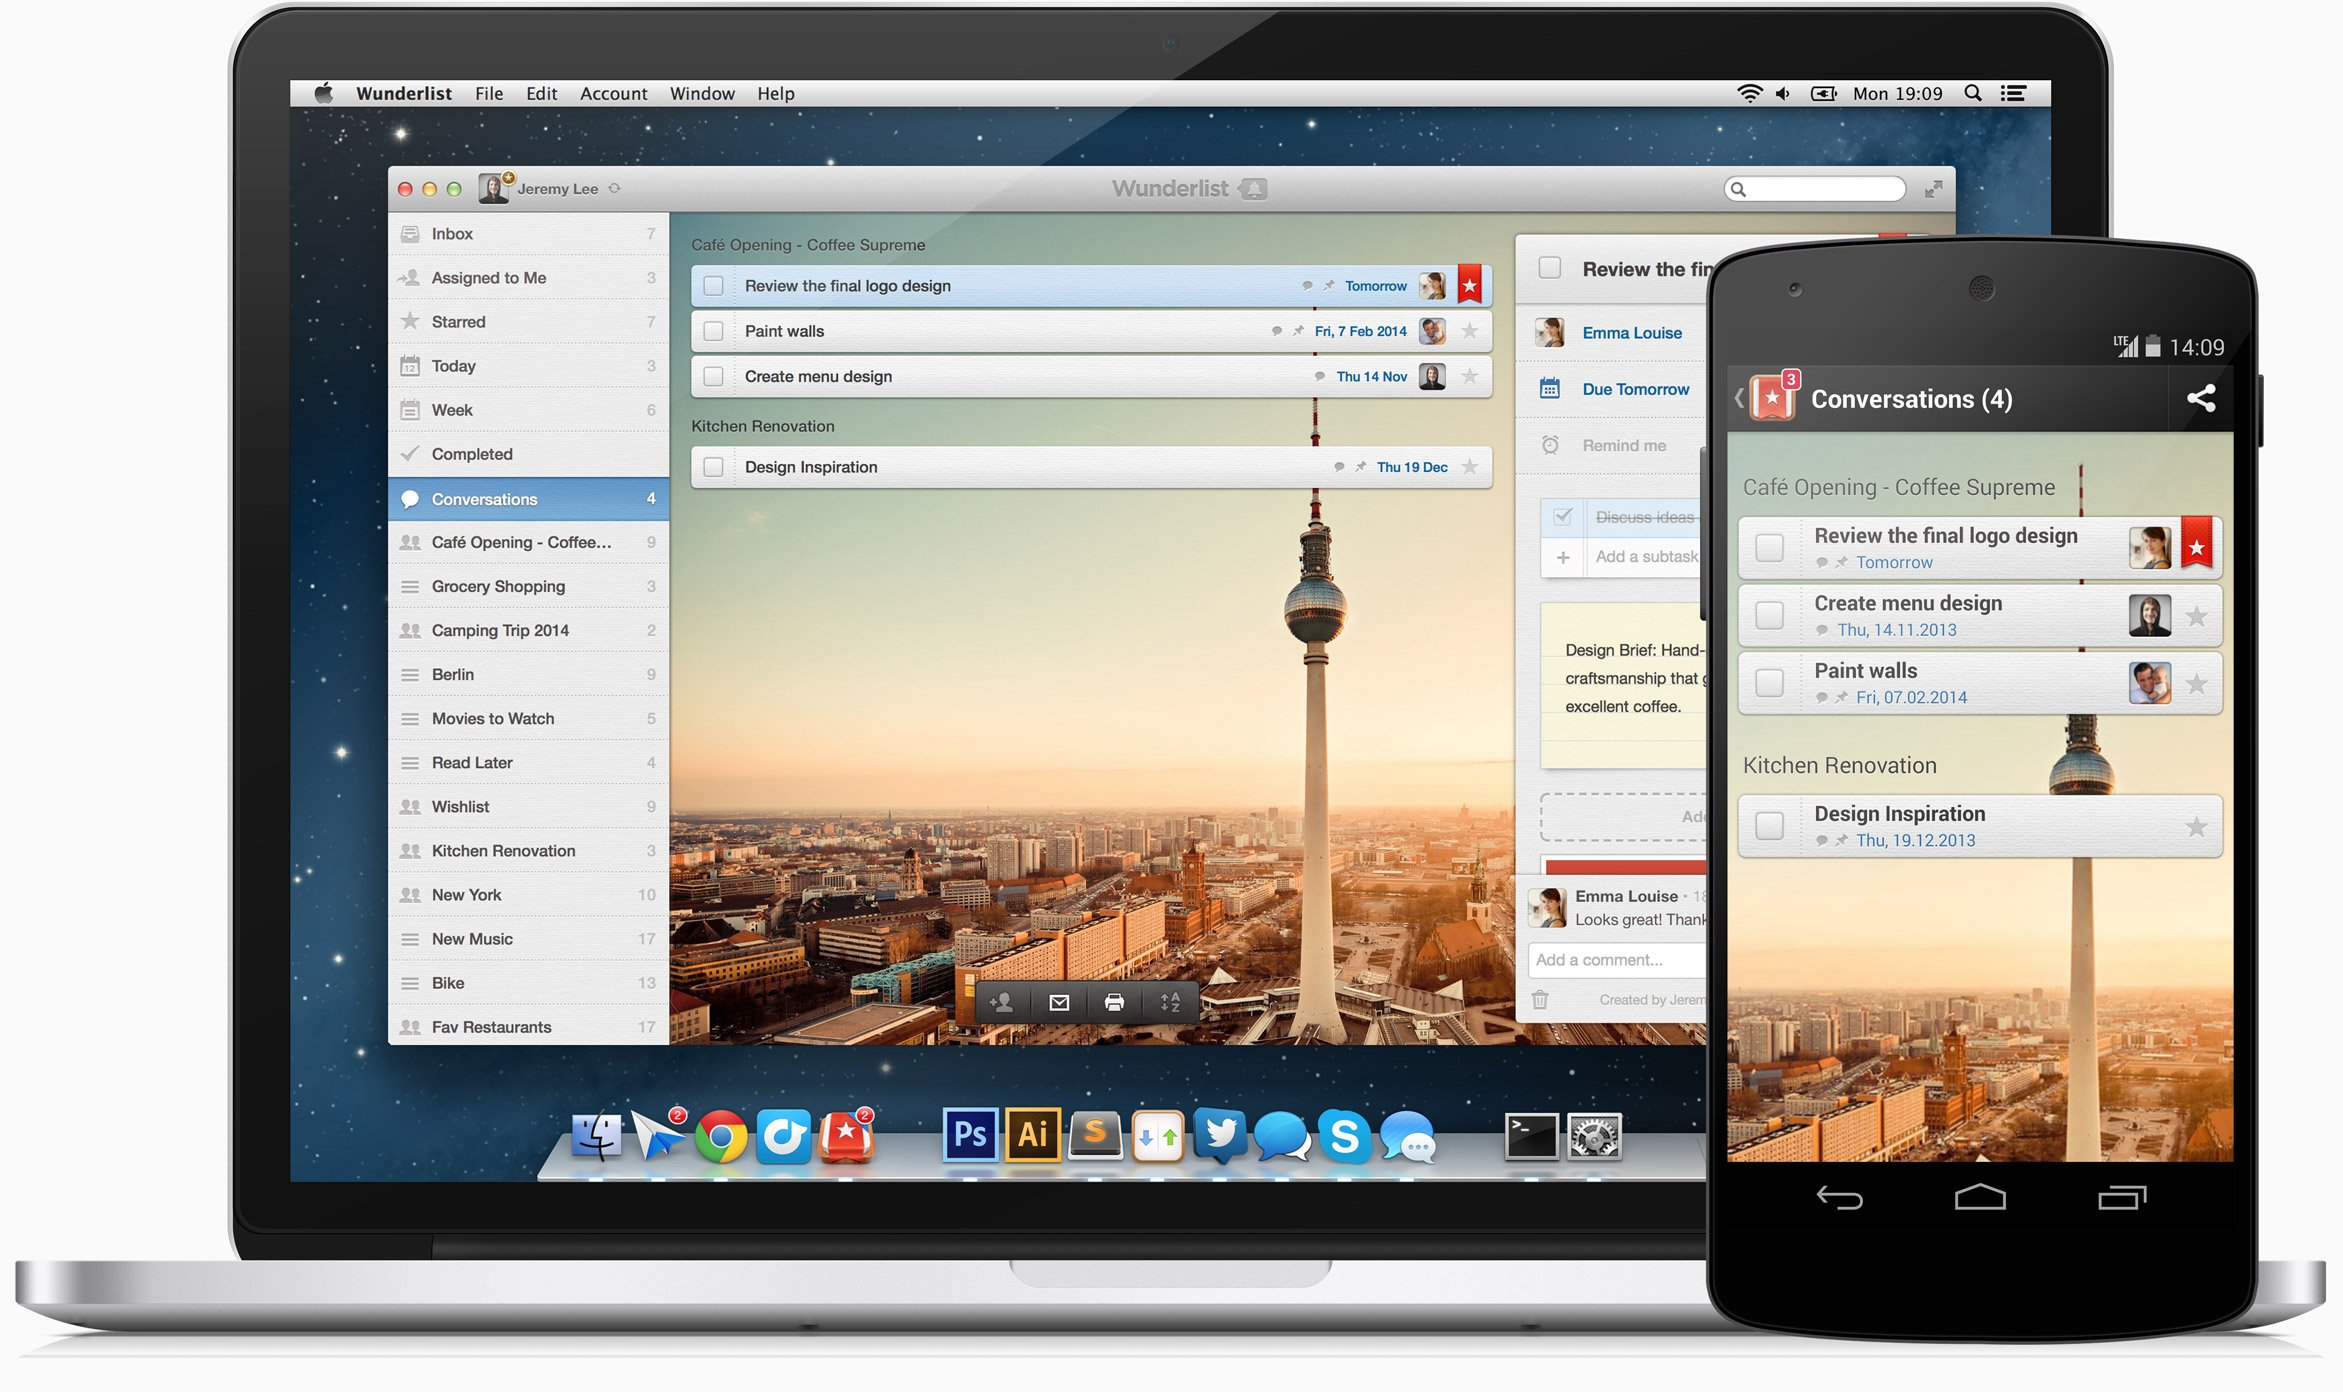 https://i2.wp.com/churchm.ag/wp-content/uploads/2014/10/macbook-wunderlist-action.jpg